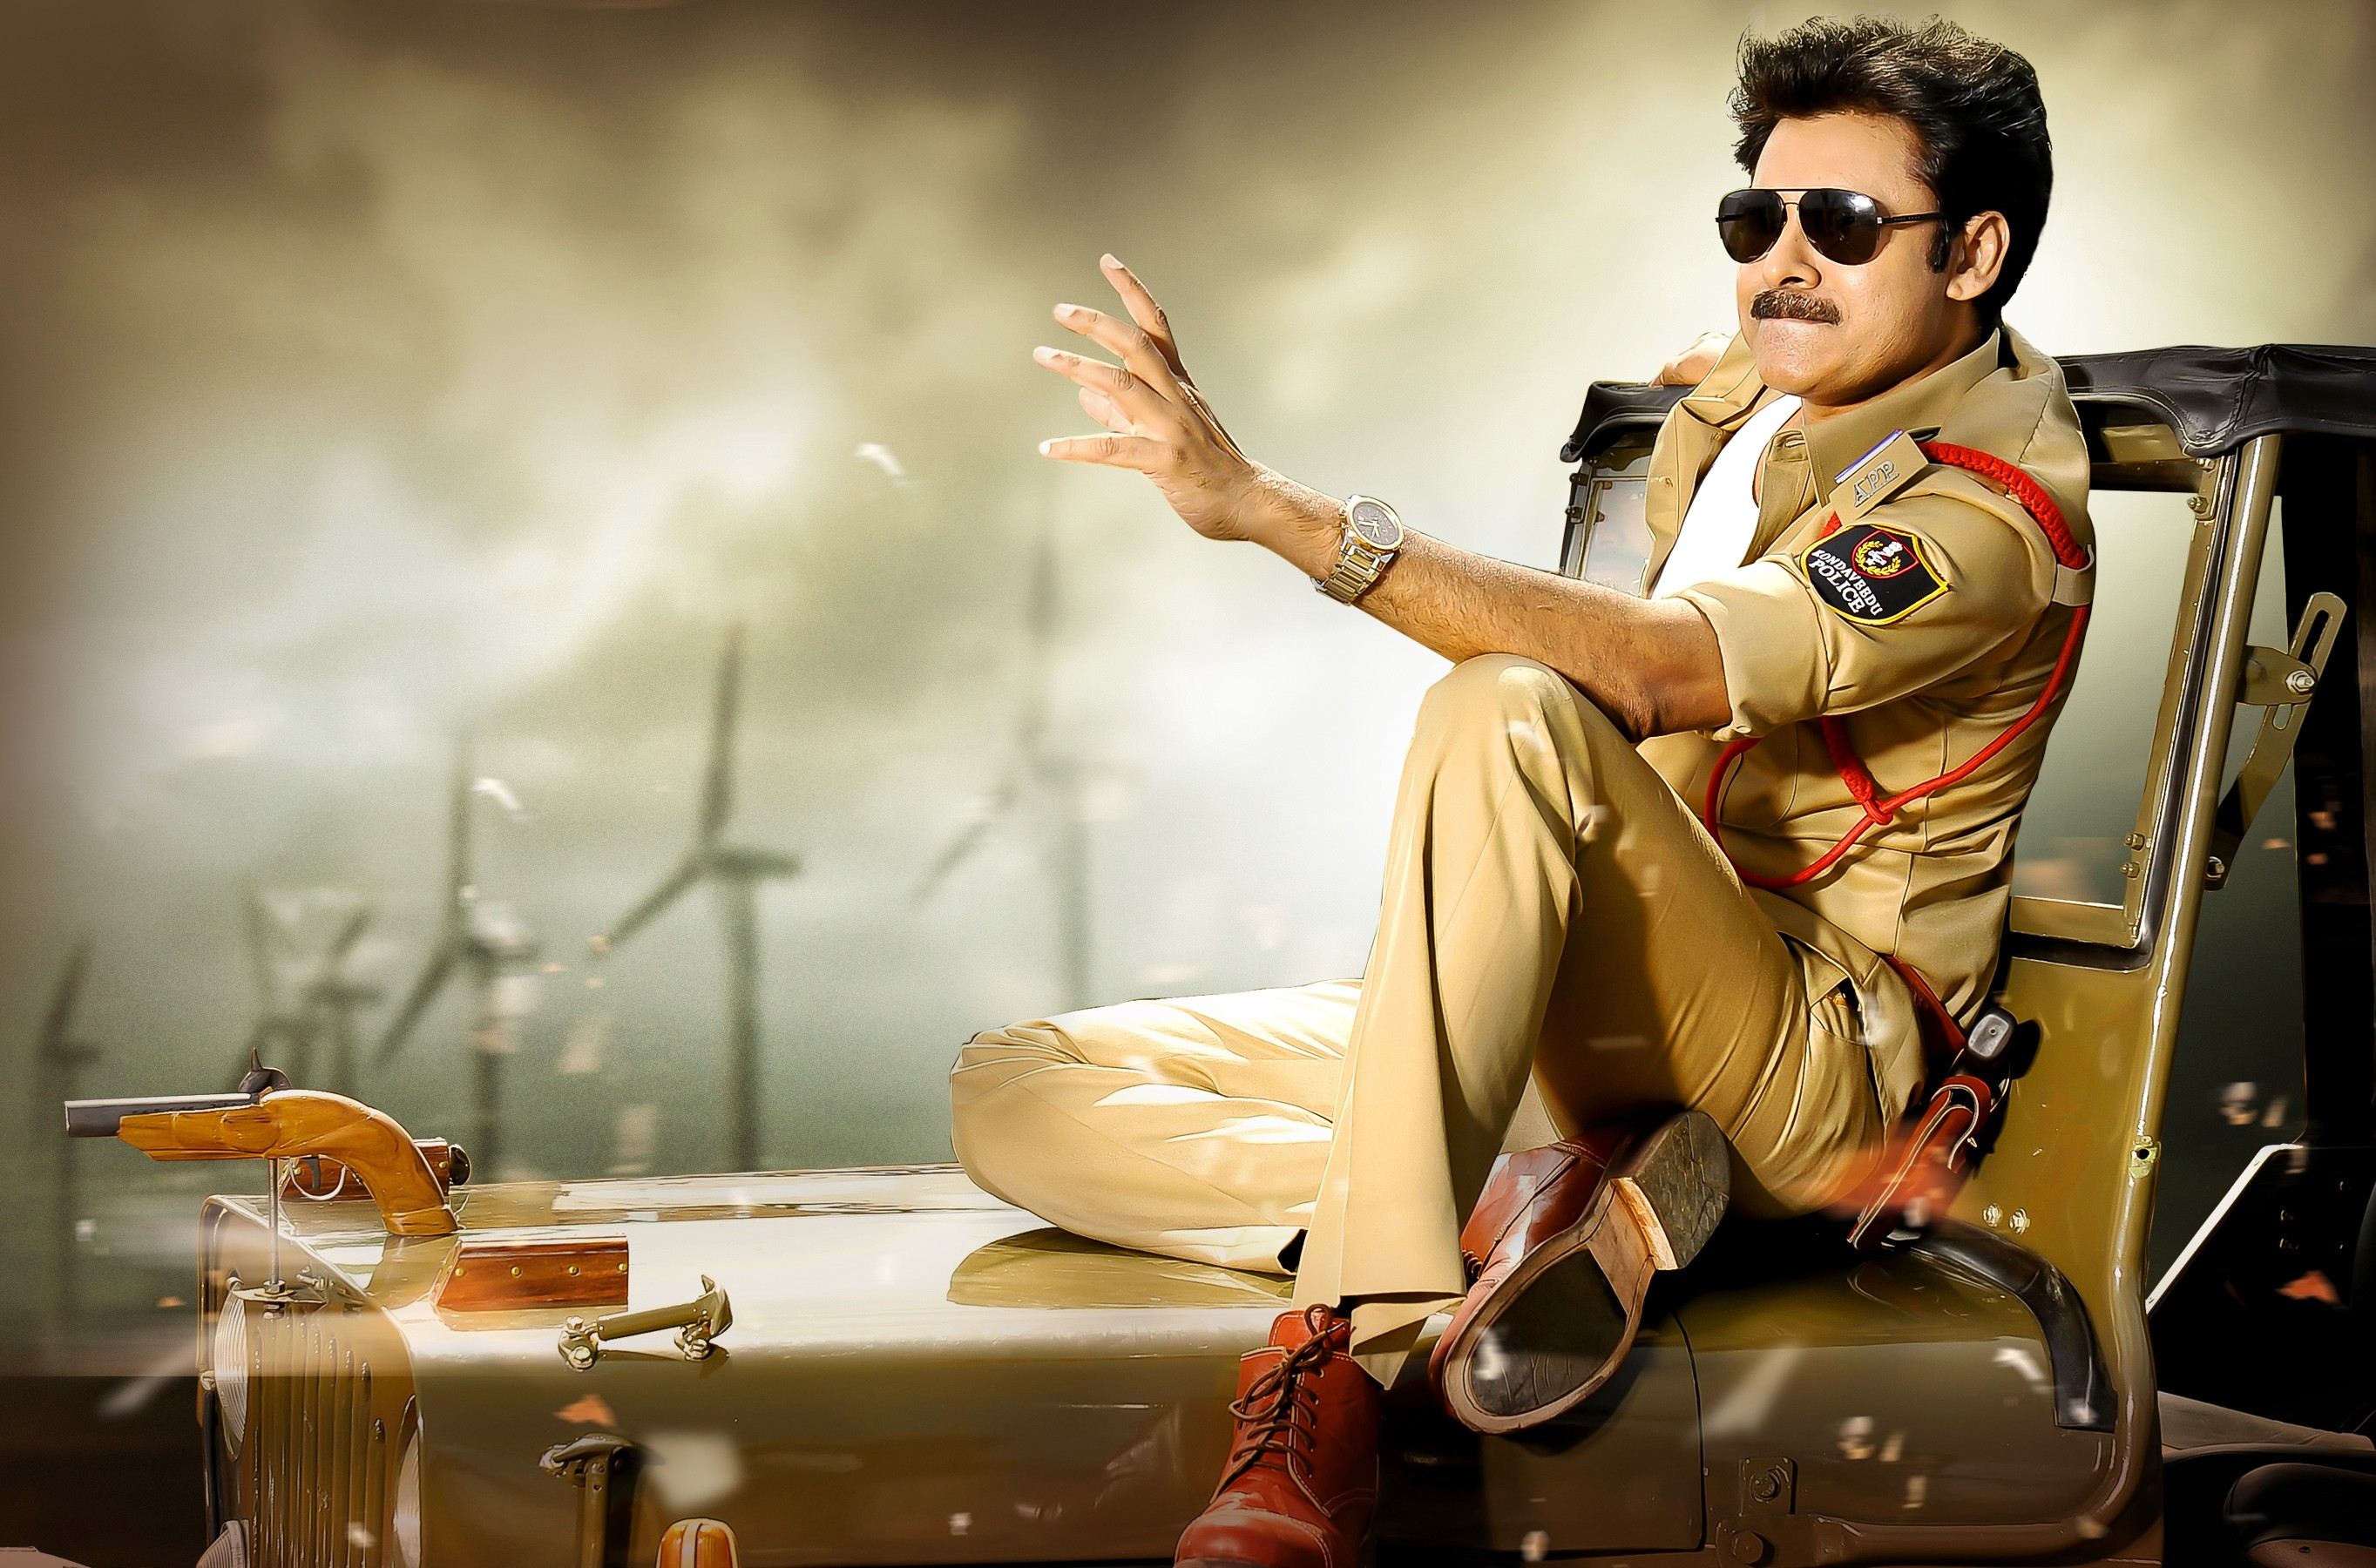 pawan kalyan images, photos, latest hd wallpapers free download